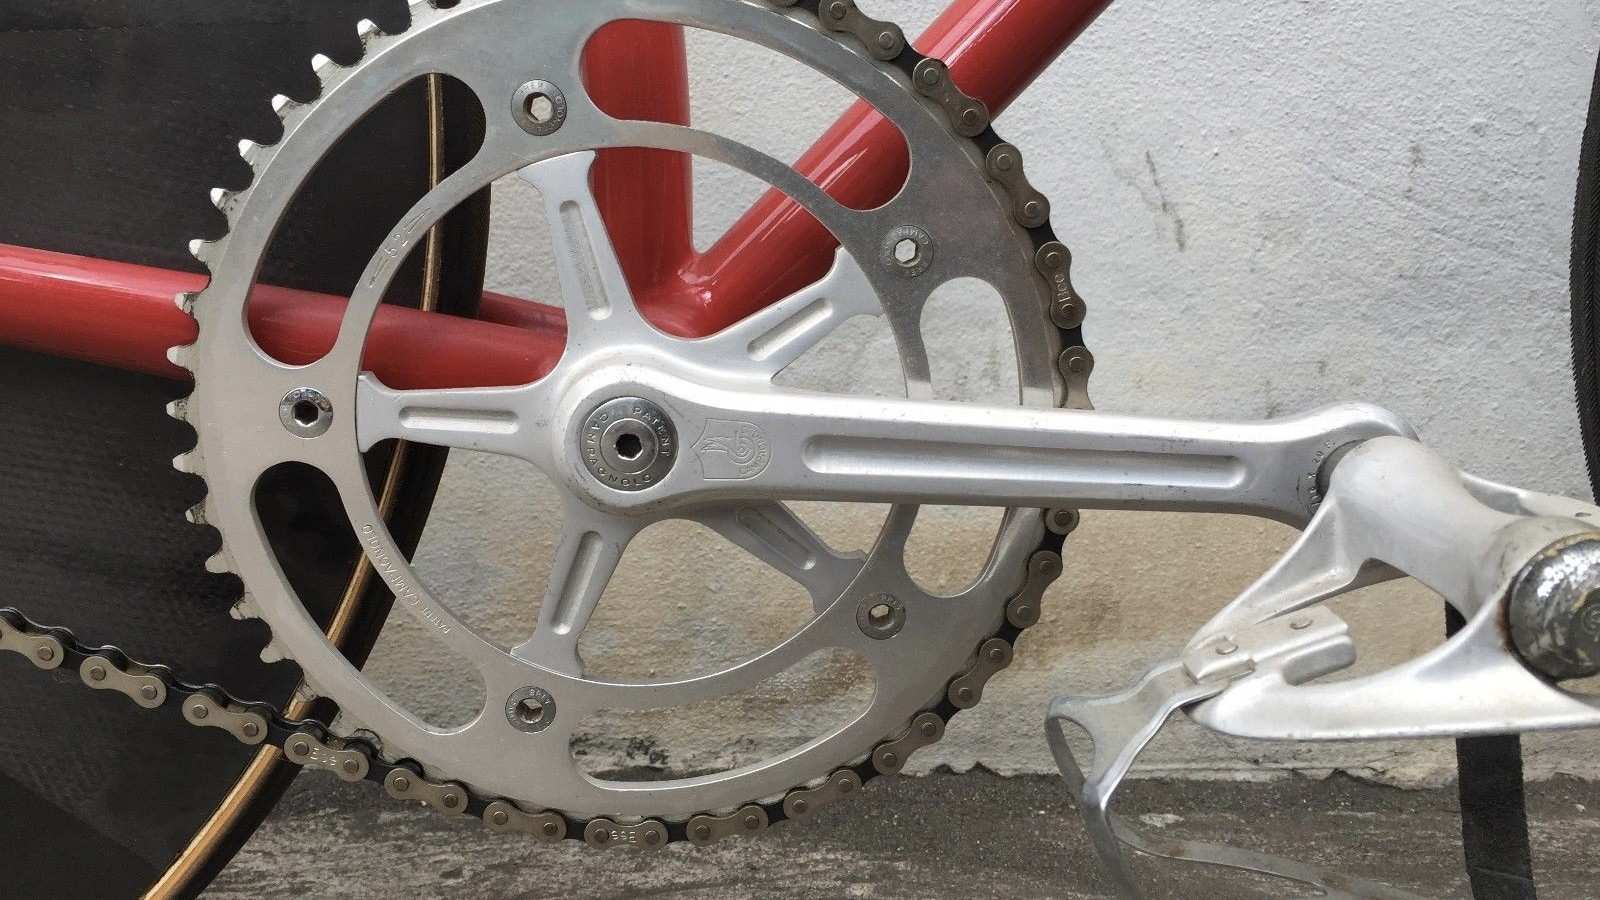 A monster size ring with spindly aluminum Campagnolo cranks, welcome to track cycling in the '70s